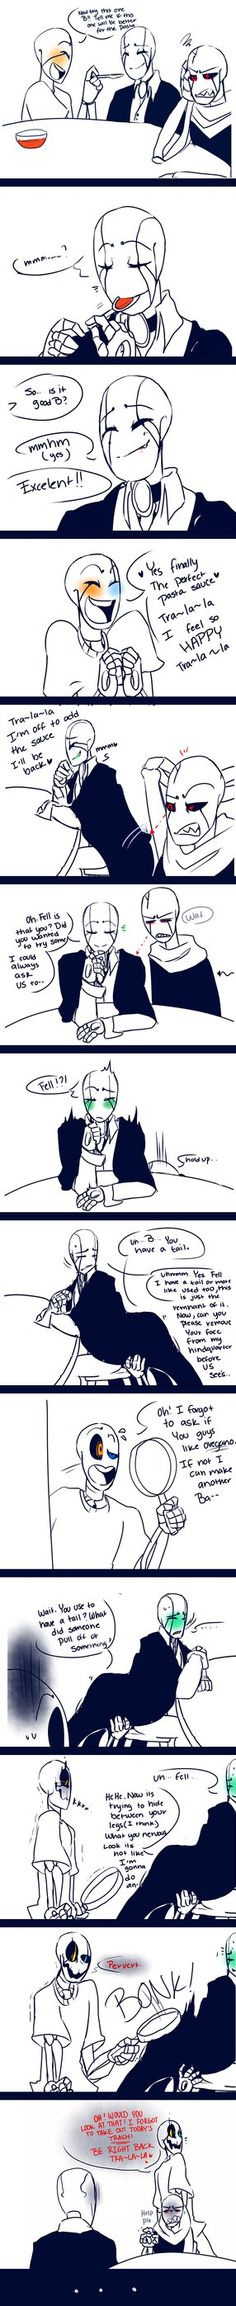 Hmmm. . . Who is B!Gaster? I like the dynamics of all three who are featured here, but I don't completely understand it